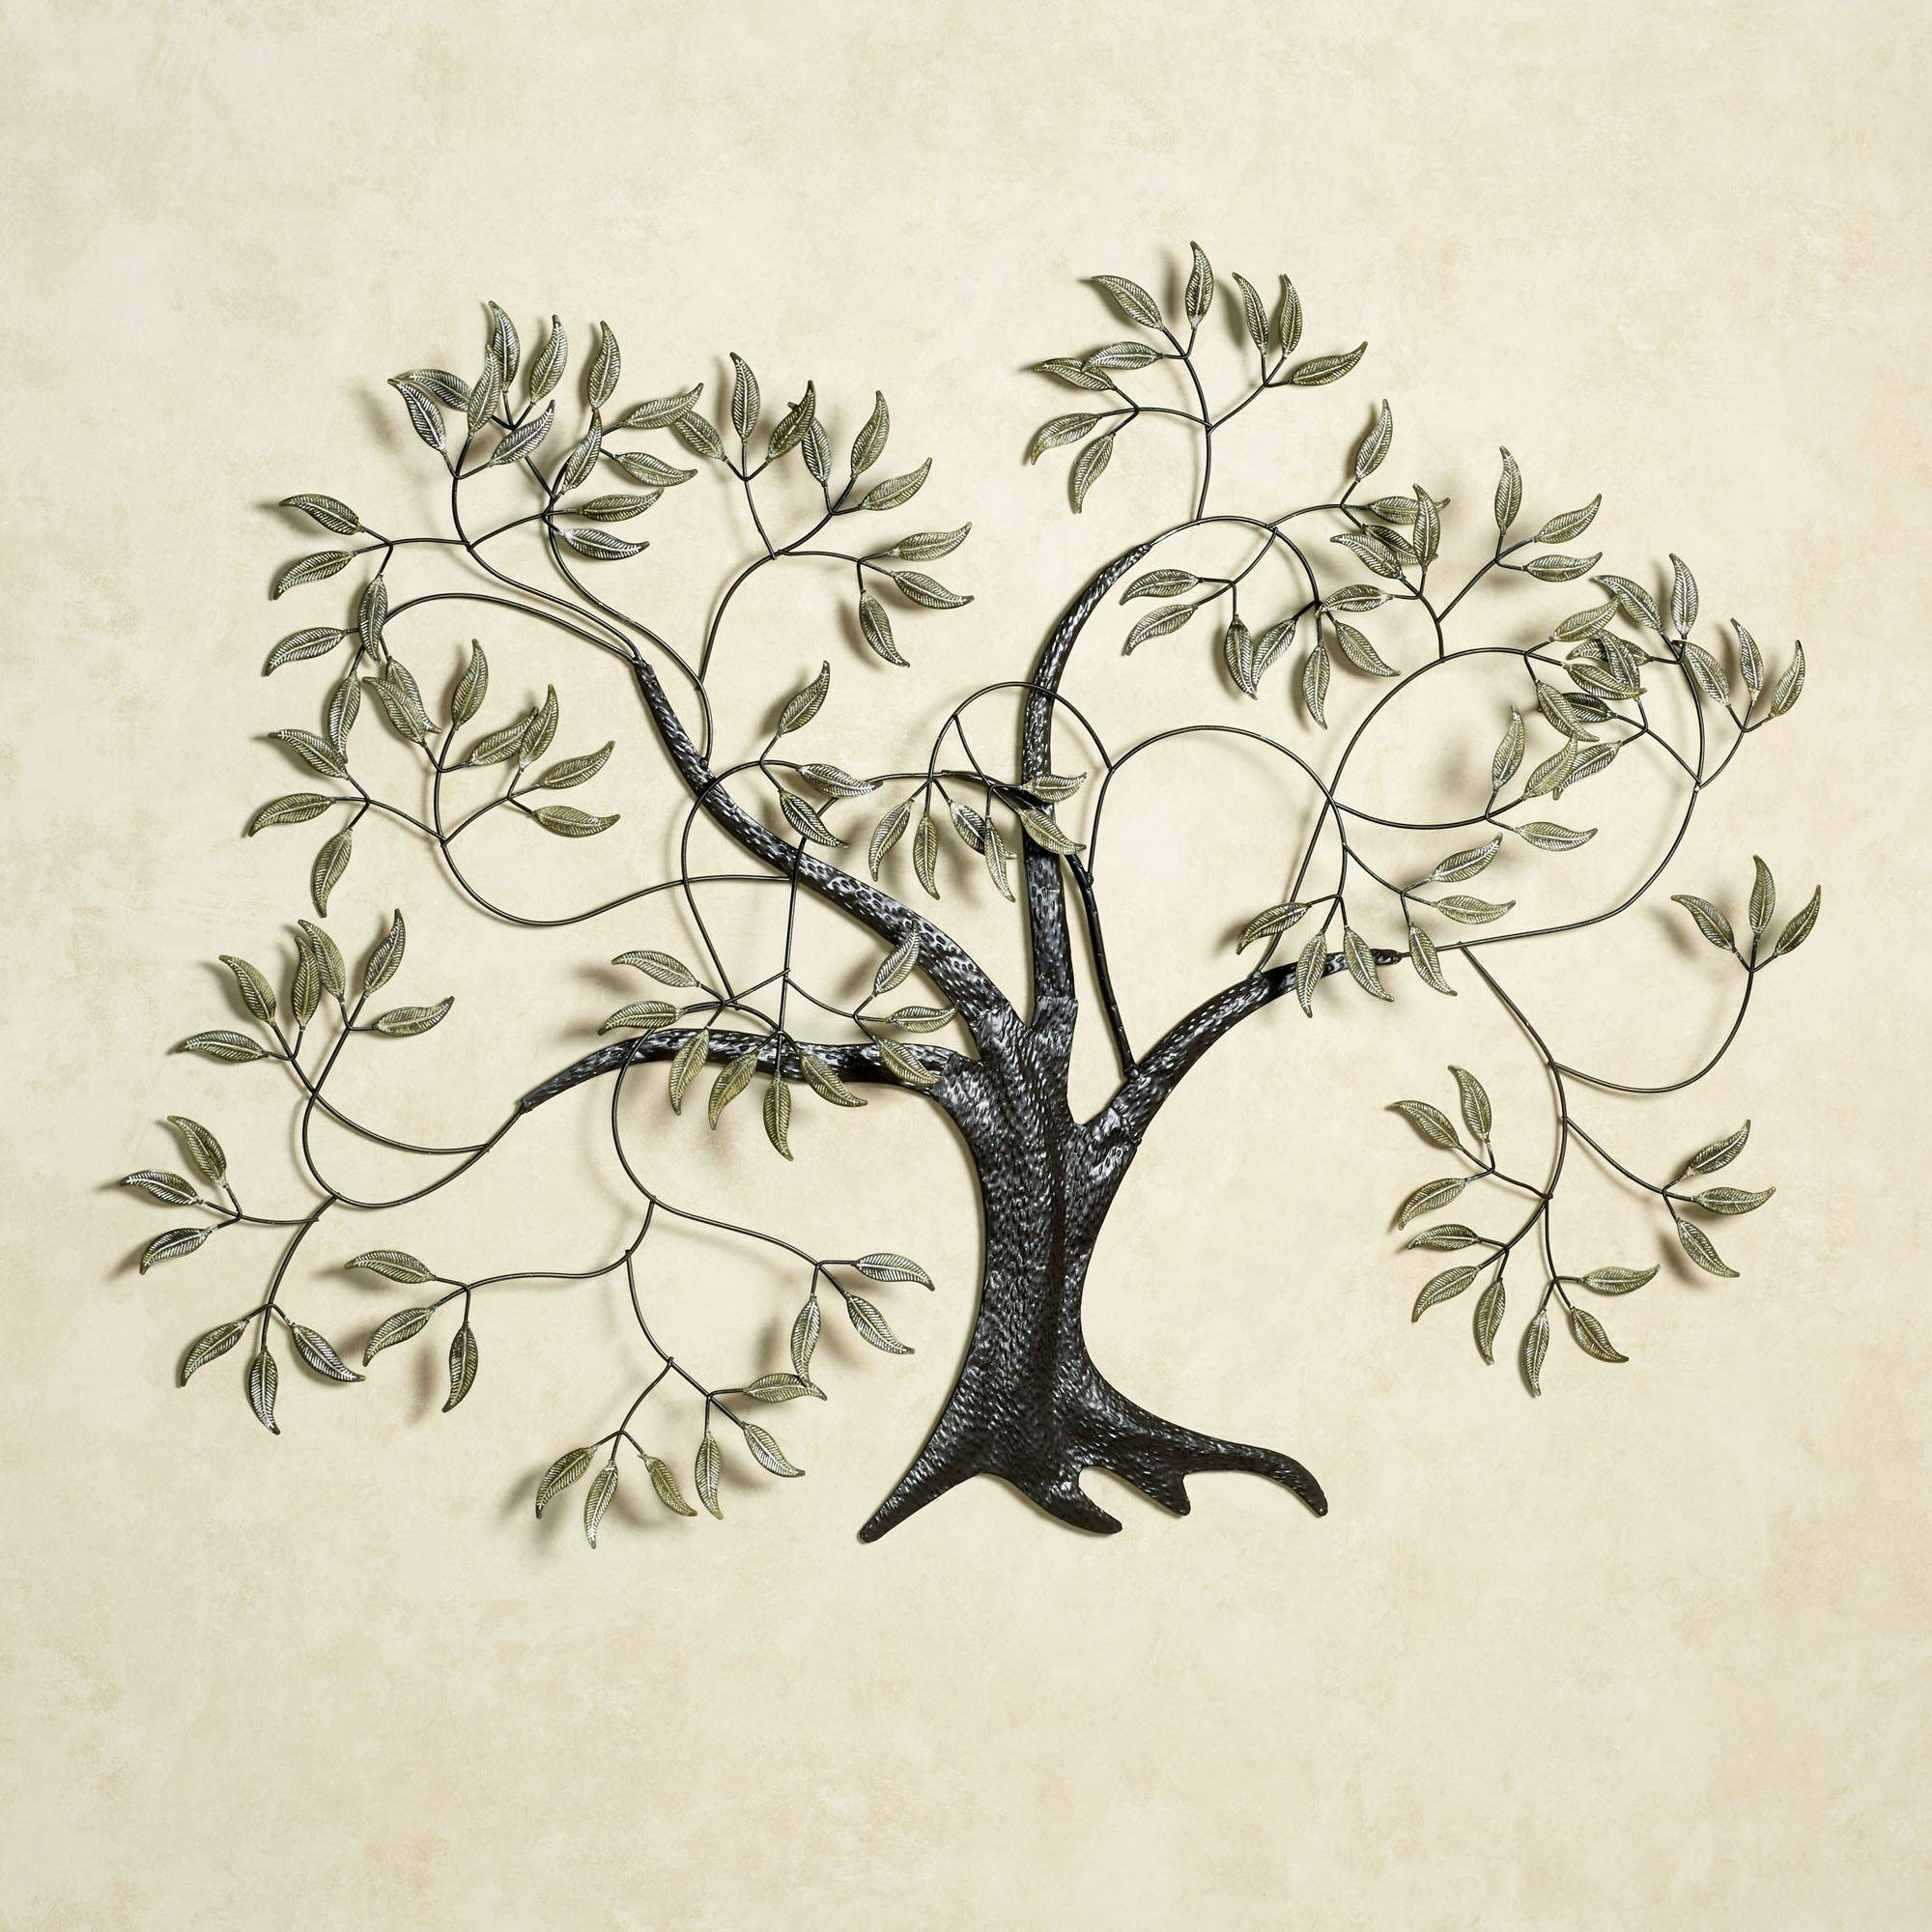 Wall Art, Metal Wall Art, Wooden Wall Art | Touch Of Class Pertaining To Most Recent Metal Wall Art Trees And Branches (View 14 of 18)